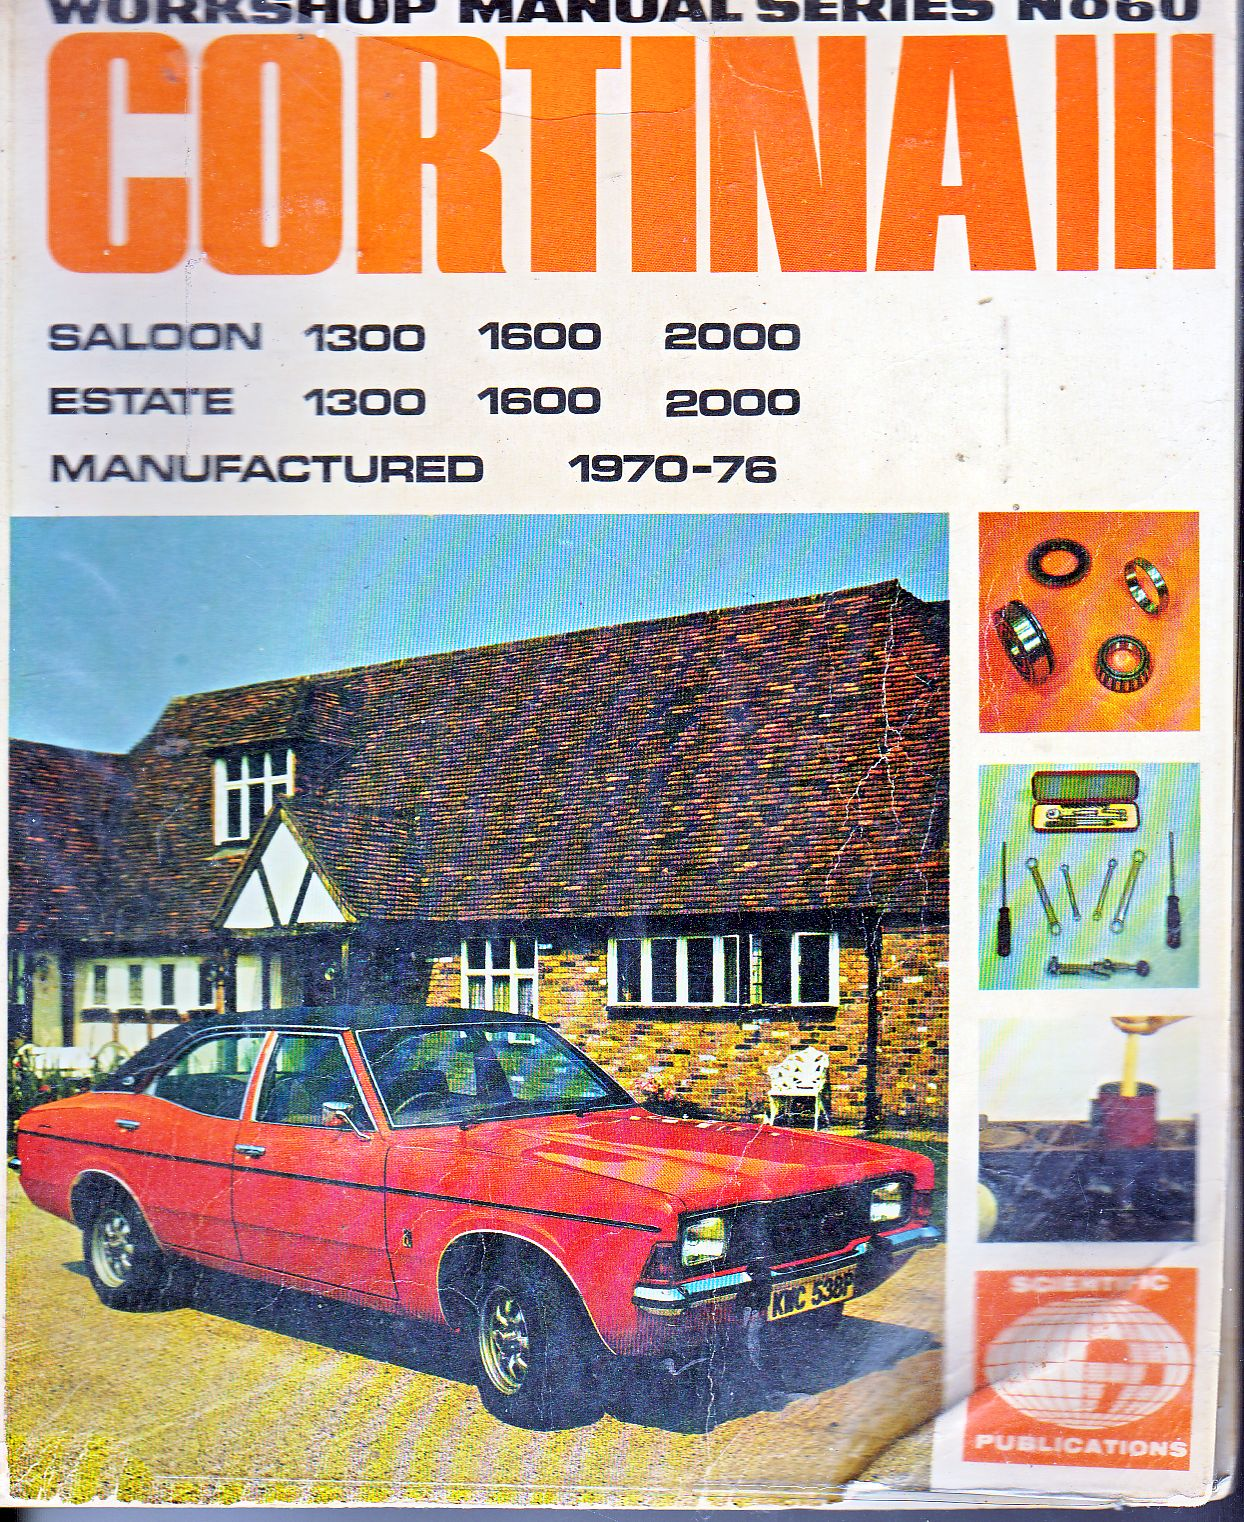 Ford Cortina Mk.III 1300 1600 2000c.c. 1970-76 Workshop Manual